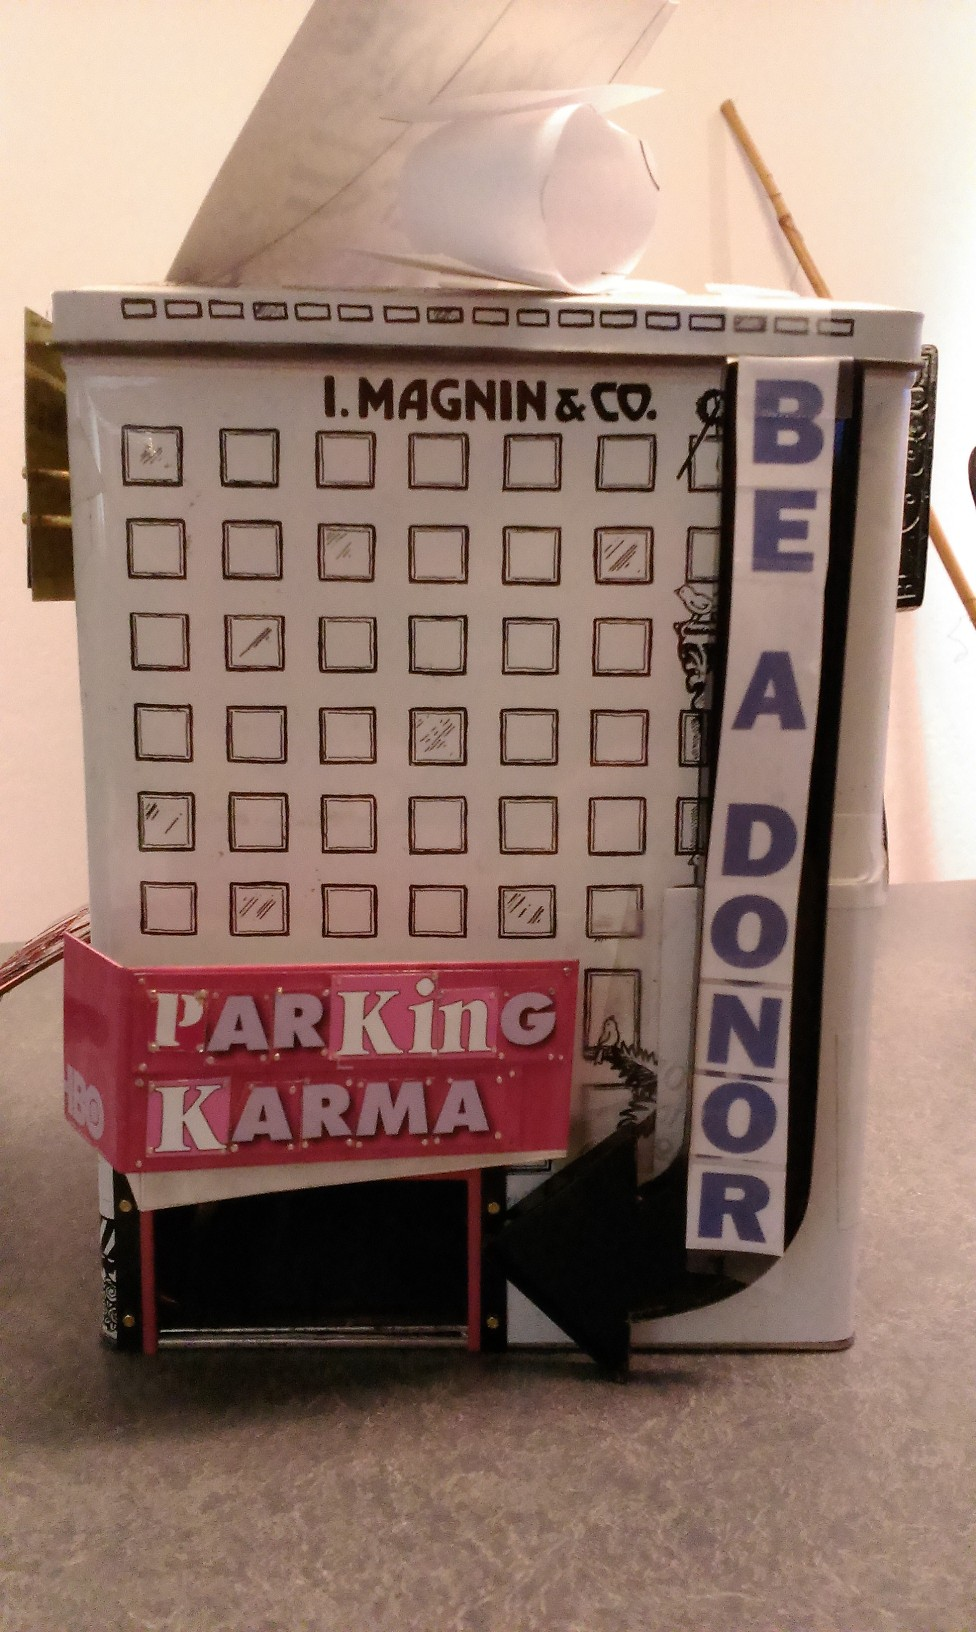 Parking Karma in progress with be a donor in paper